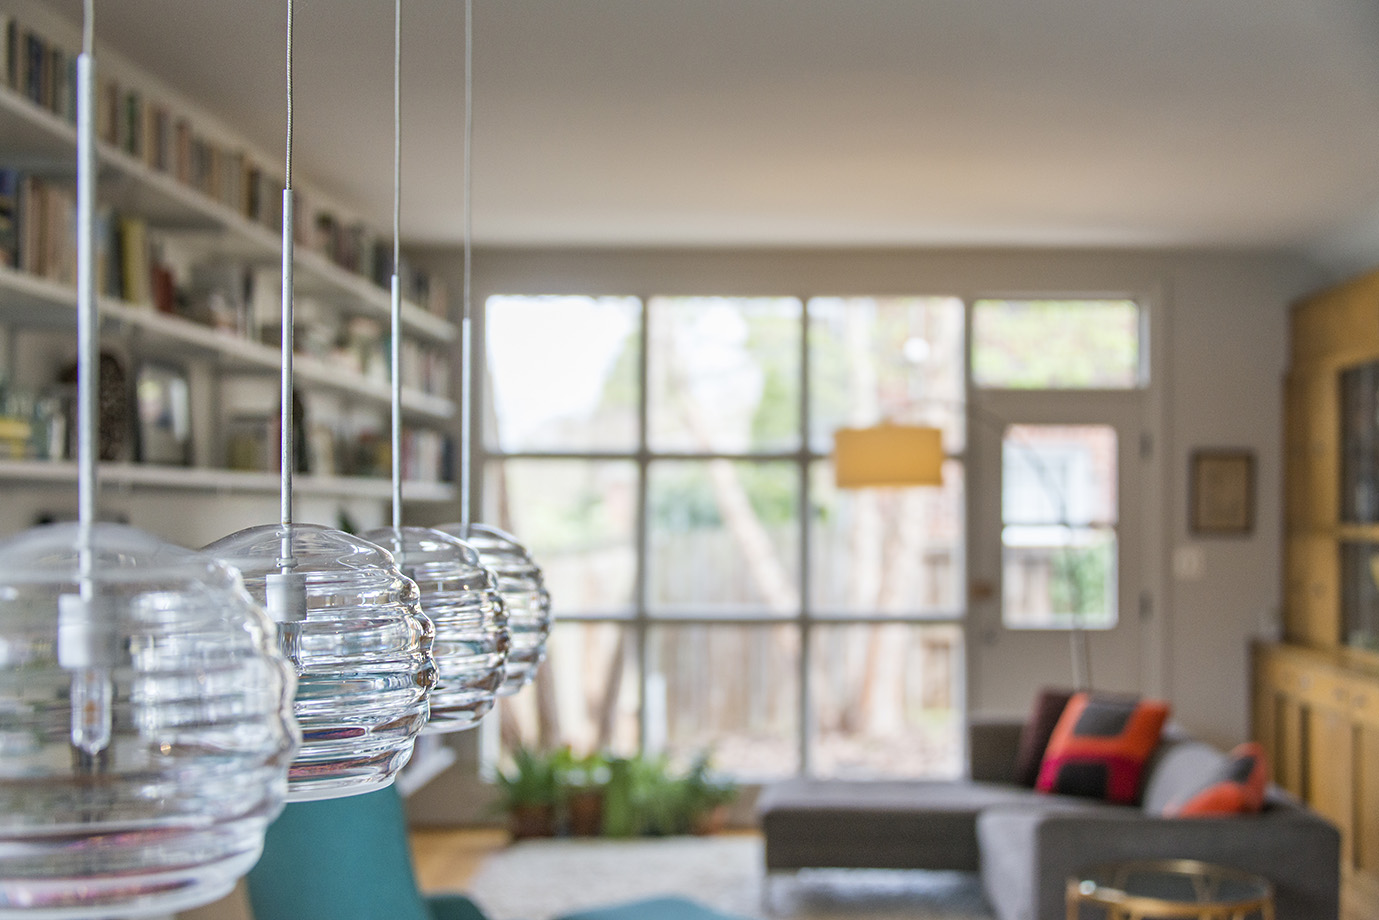 Hanging lamp fixtures add a beautiful detail to this mid-century modern home